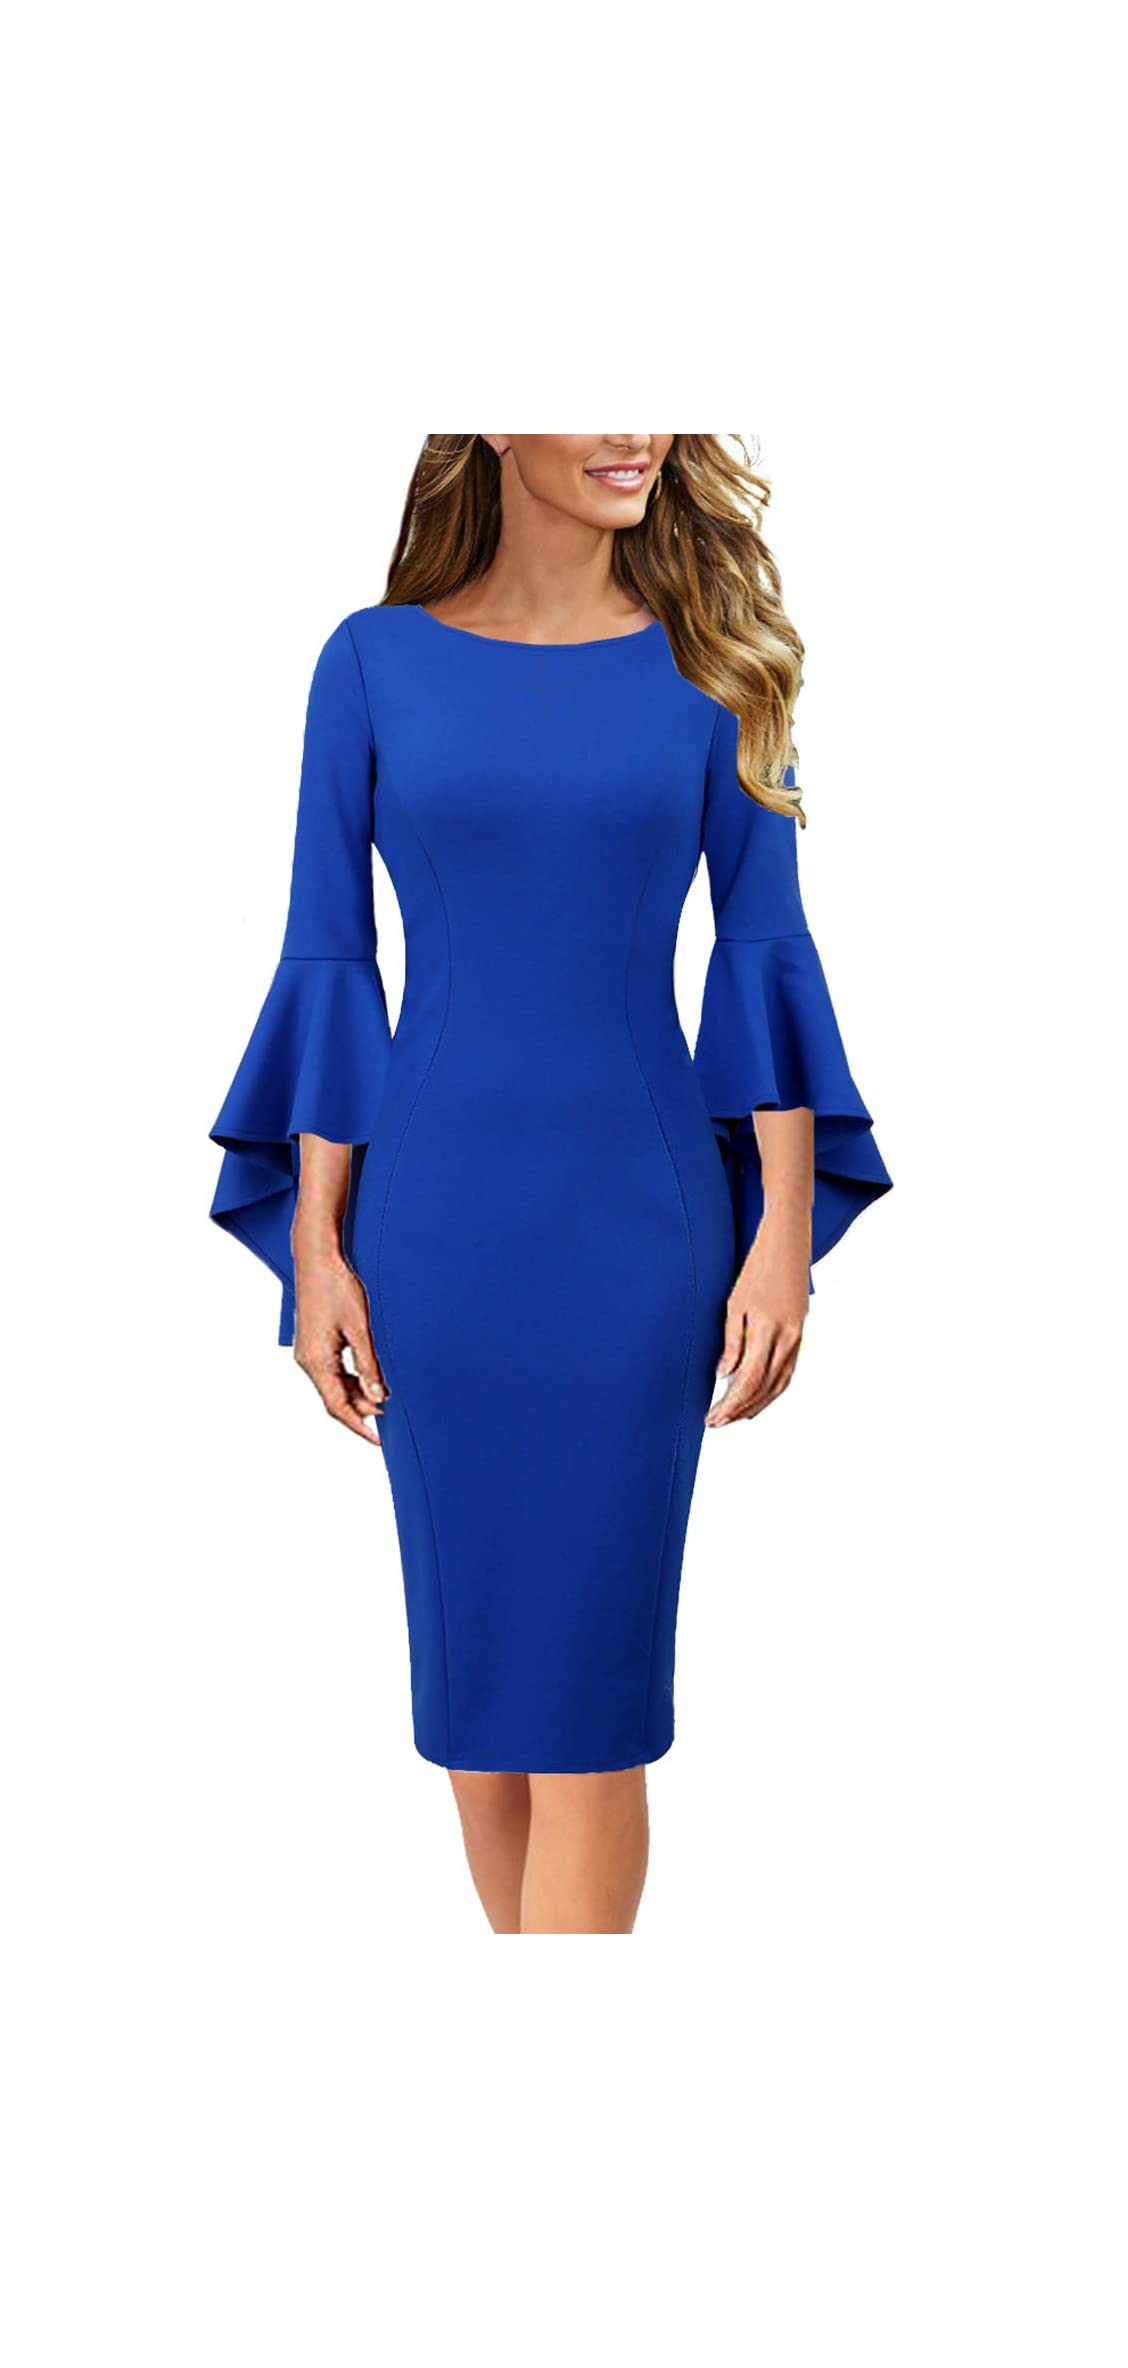 Womens Ruffle Bell Sleeves Business Cocktail Party Sheath